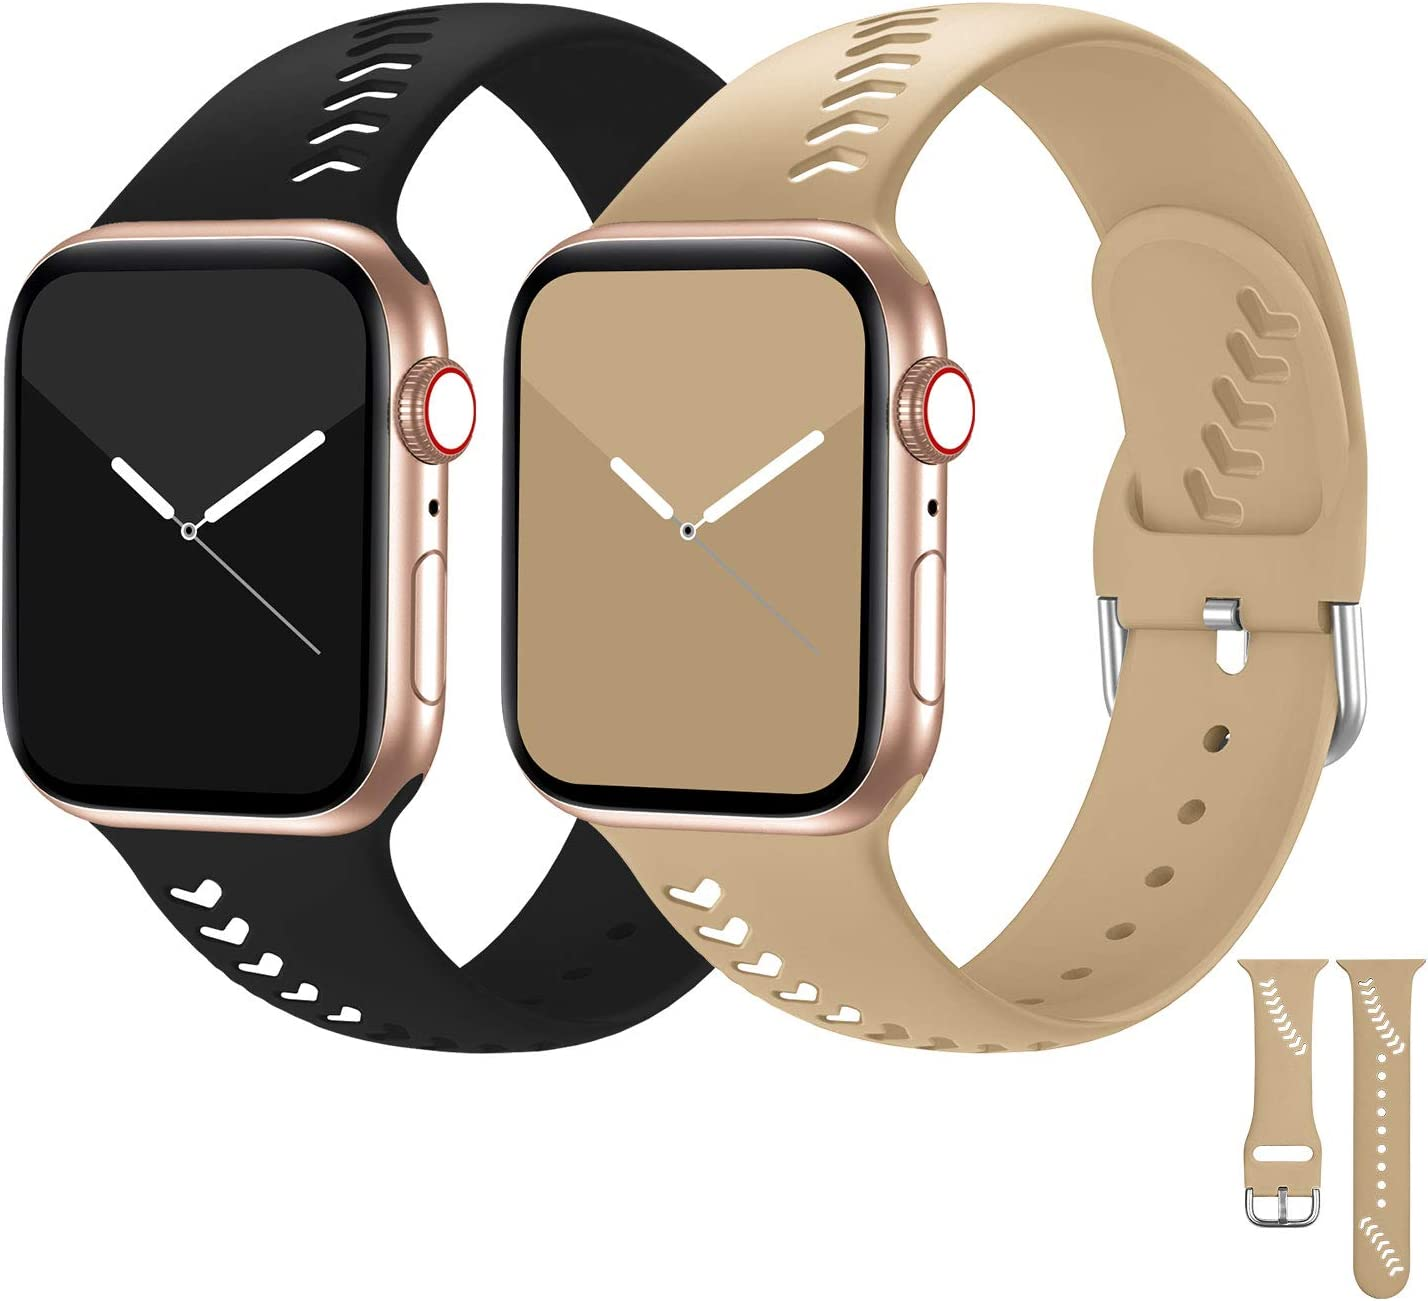 Seizehe Compatible for Apple Watch Bands 38mm 40mm Series 5 Series 6 Women Men, Soft Silicone Breathable iWatch Bands 38mm 40mm Compatible for Apple Watch SE Series 6/5/4/3/2/1